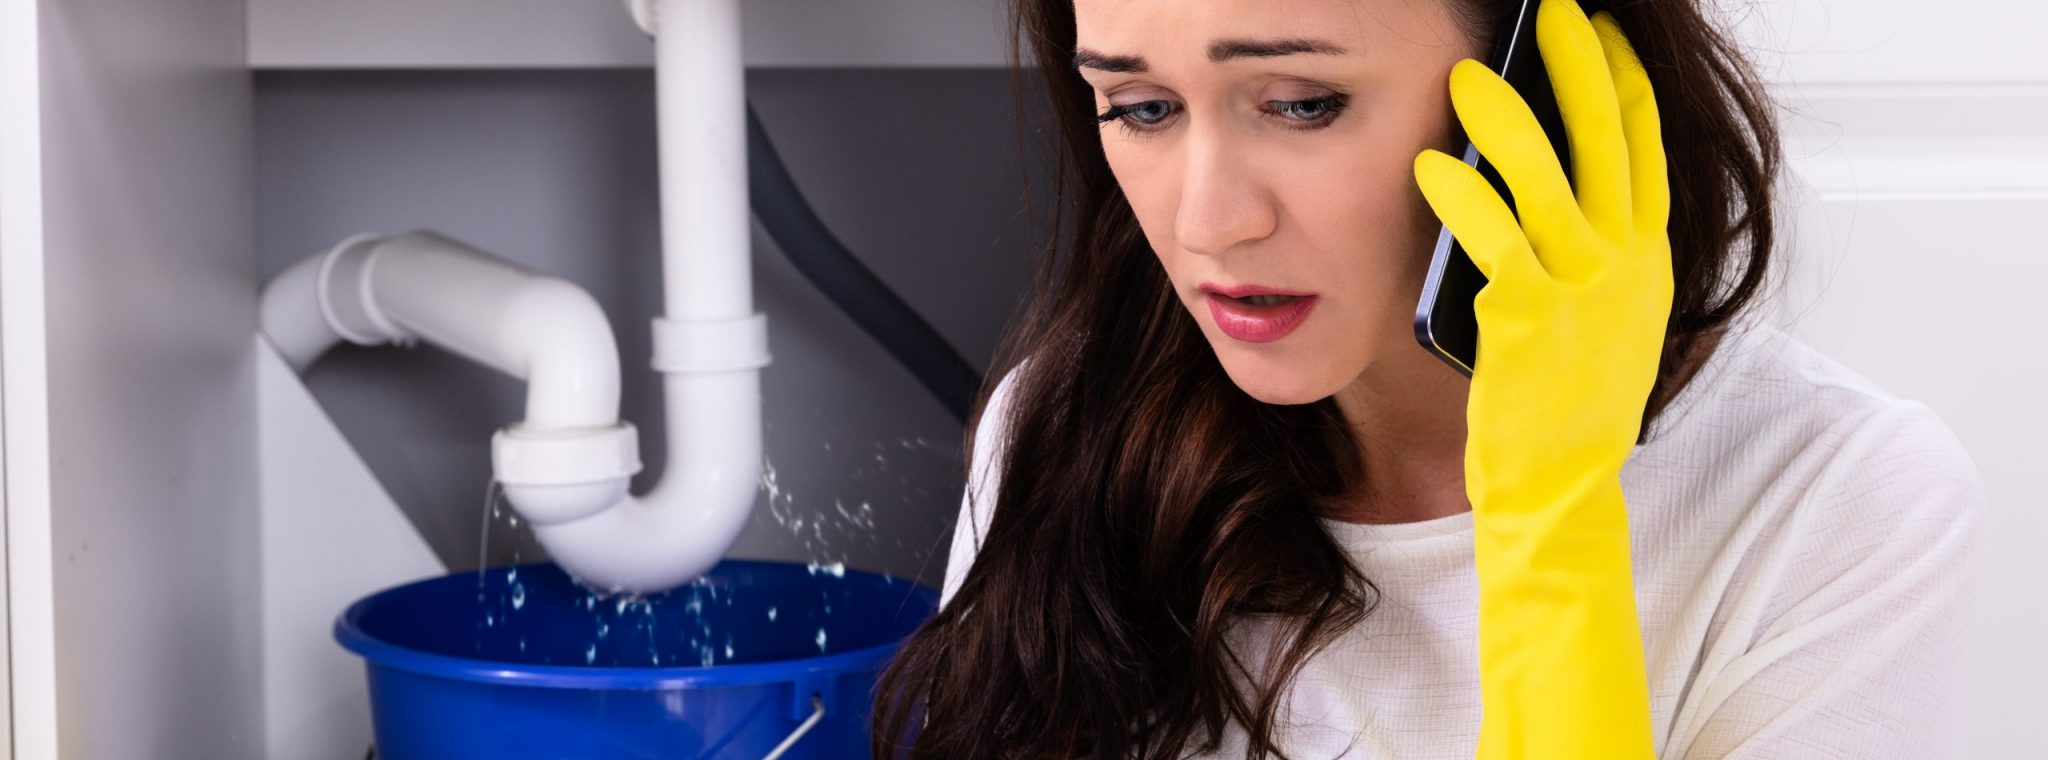 Orlando Plumber - Fast and Affordable Plumbing Service in Orlando, FL.